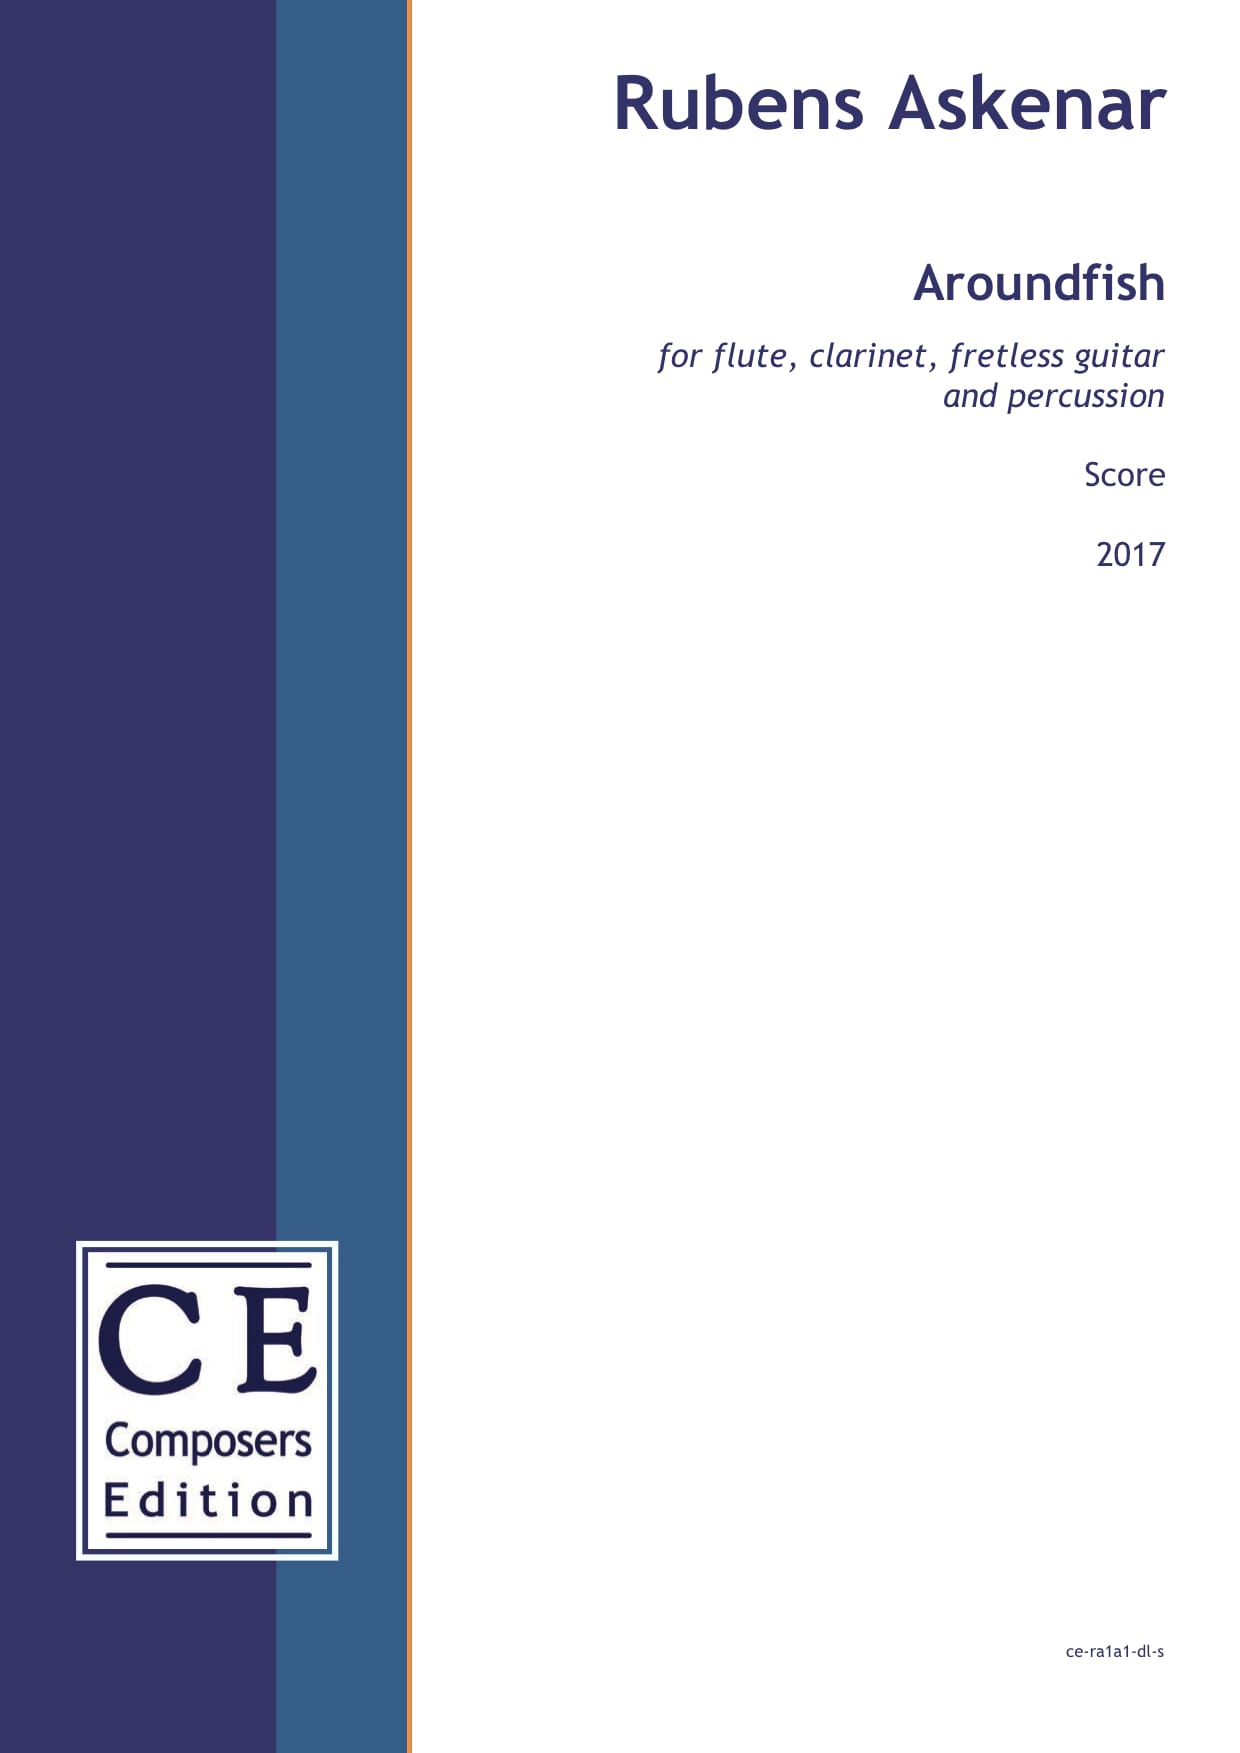 Rubens Askenar: Aroundfish for flute, clarinet, fretless guitar and percussion